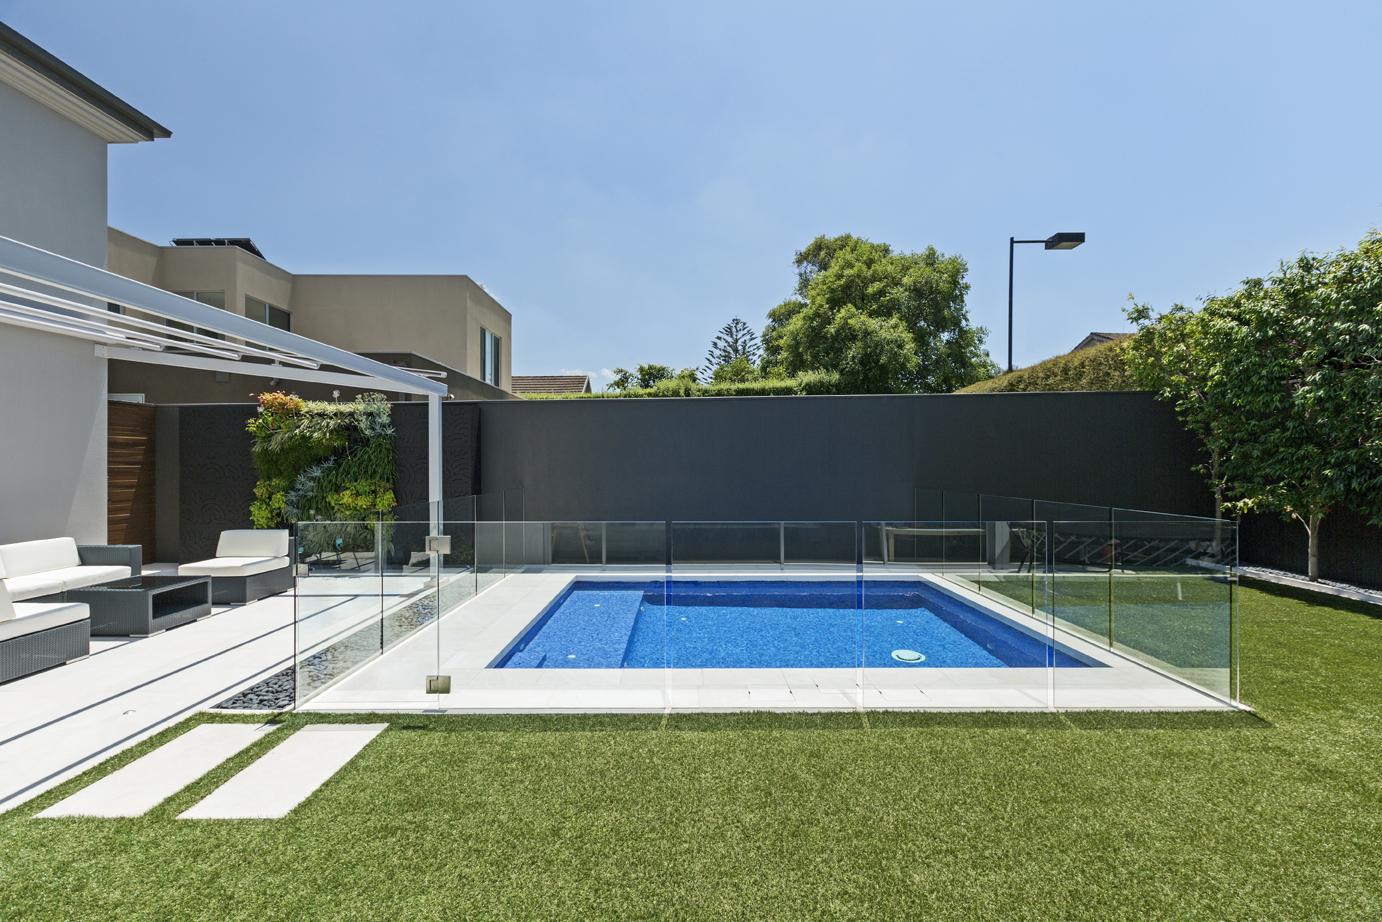 A pool that uses space efficiently